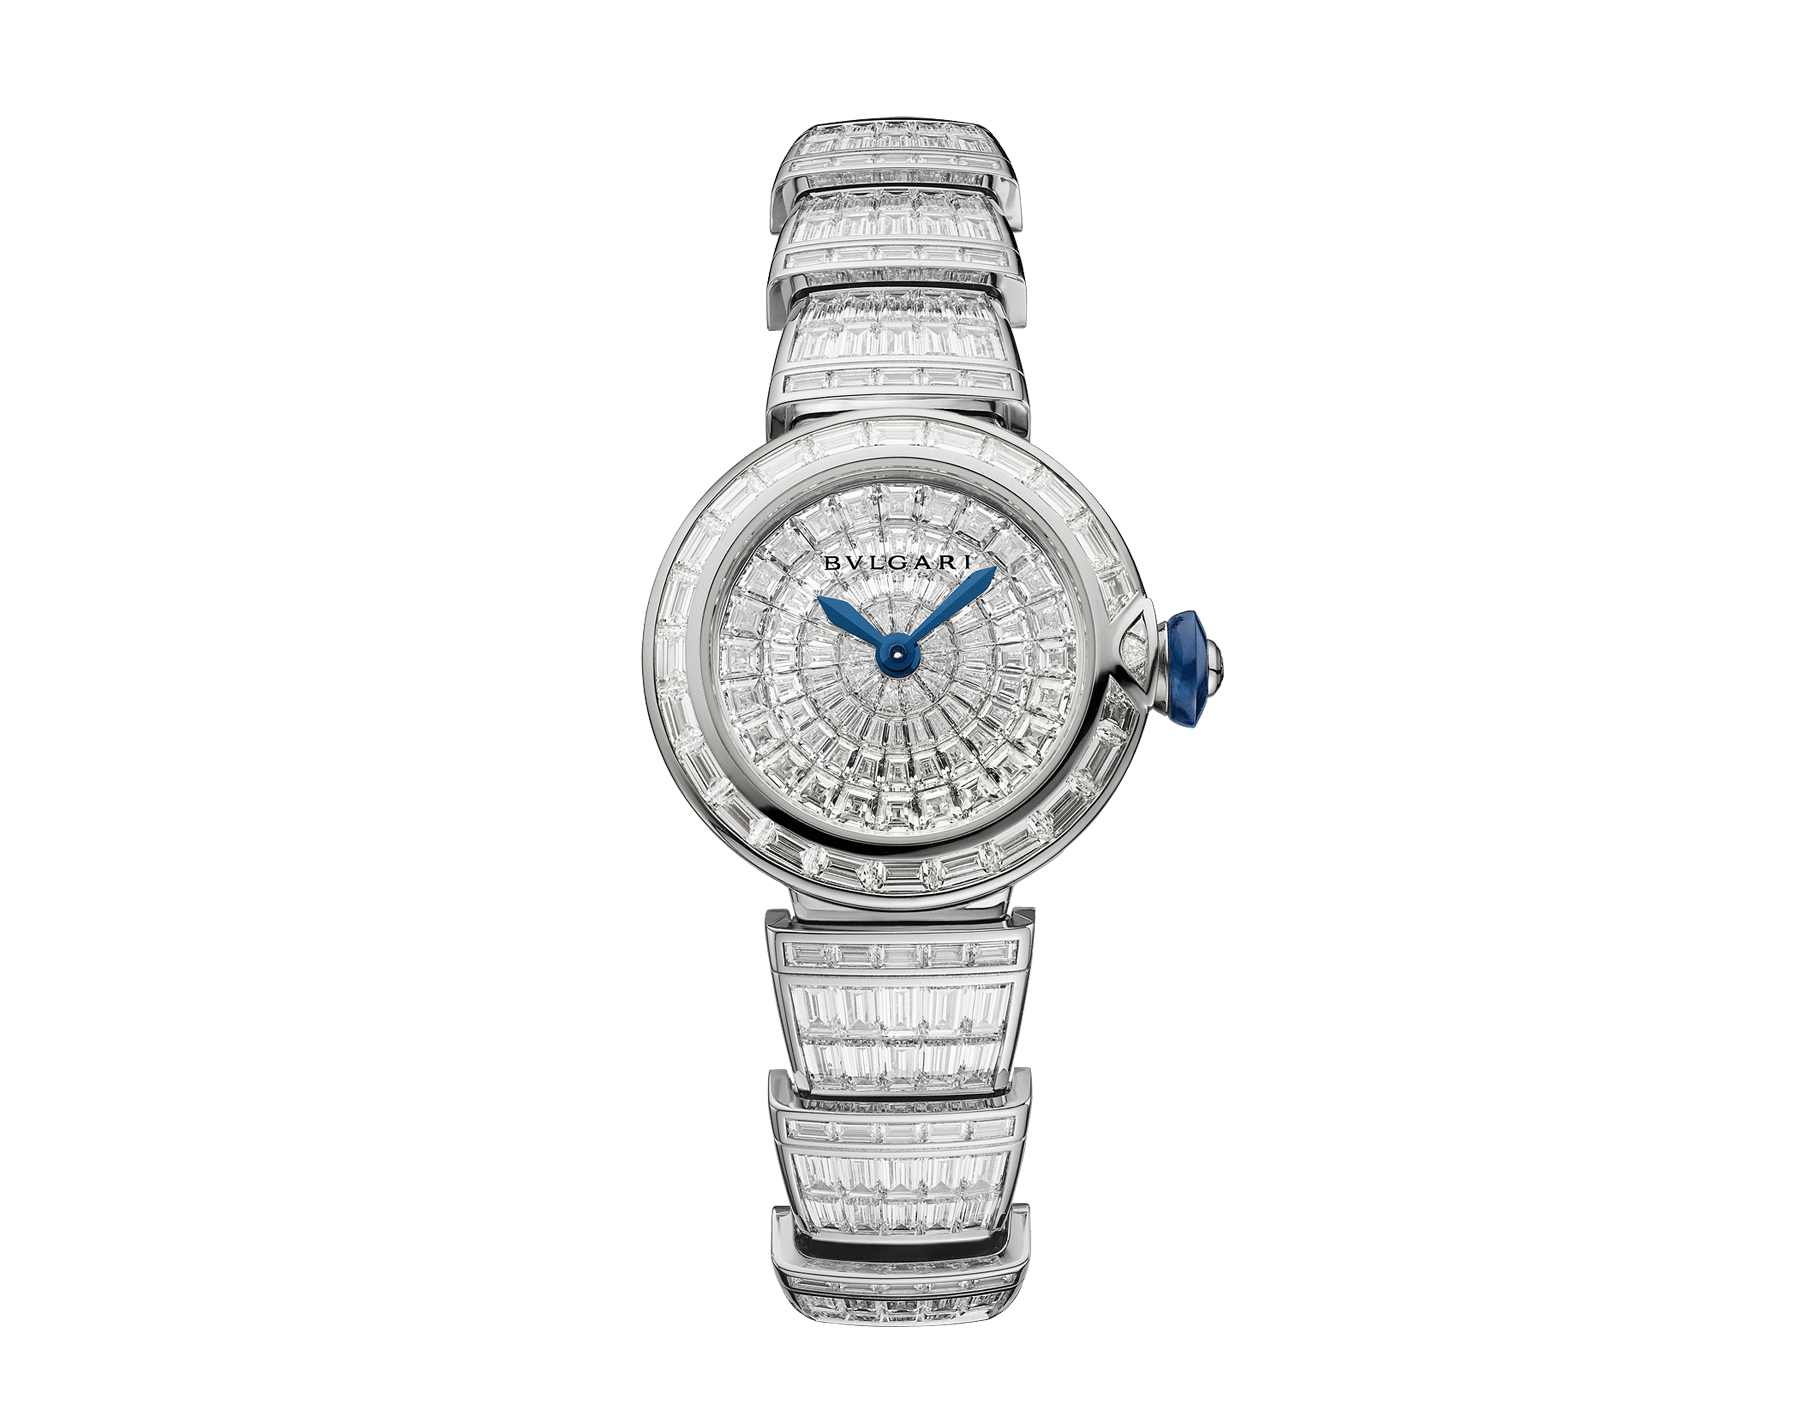 LVCEA watch in 18kt white gold case and bracelet, both set with baguette diamonds and full diamond dial. 102465 image 1